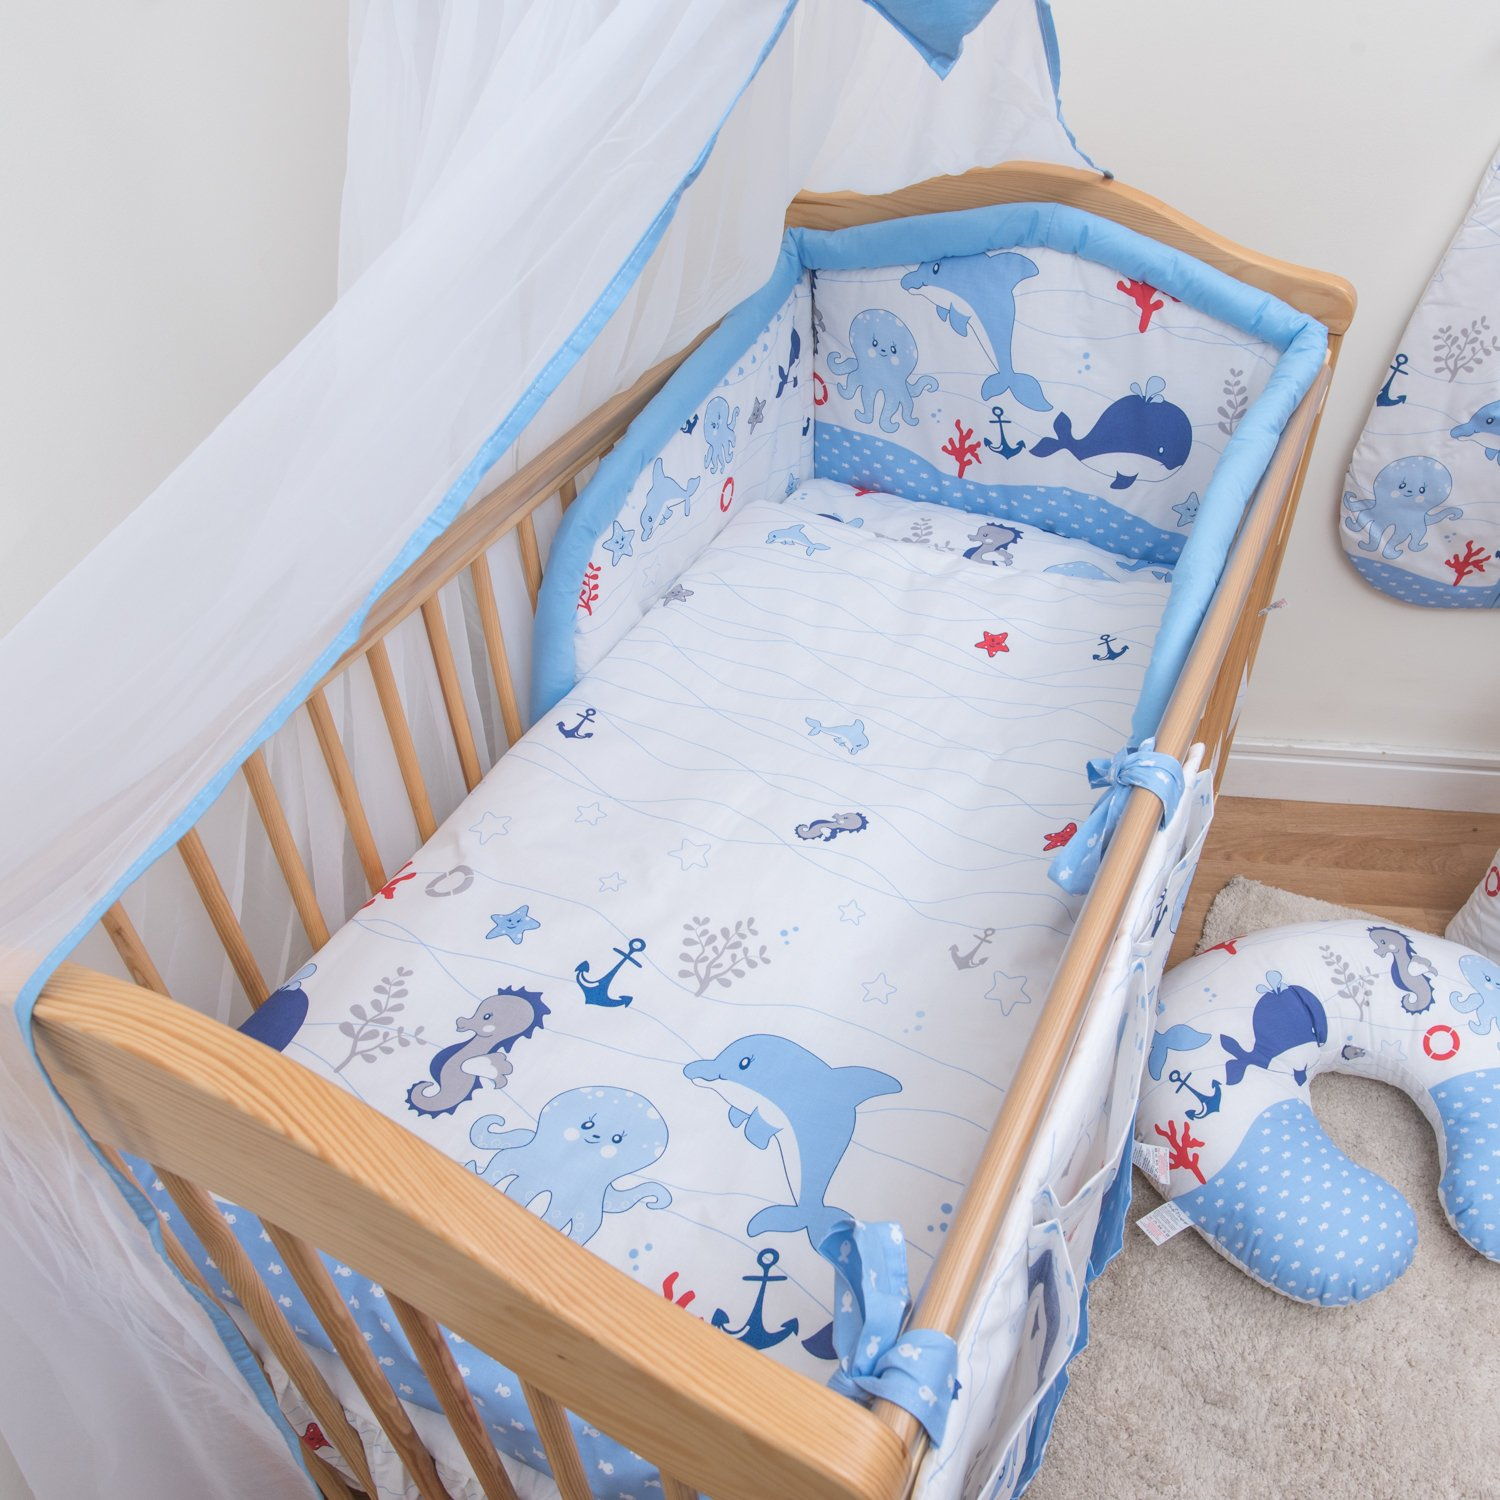 3 Pcs Bedding Set 190cm Padded Cot Bed Bumper 140x70 cm - Pattern 15 BabyComfort